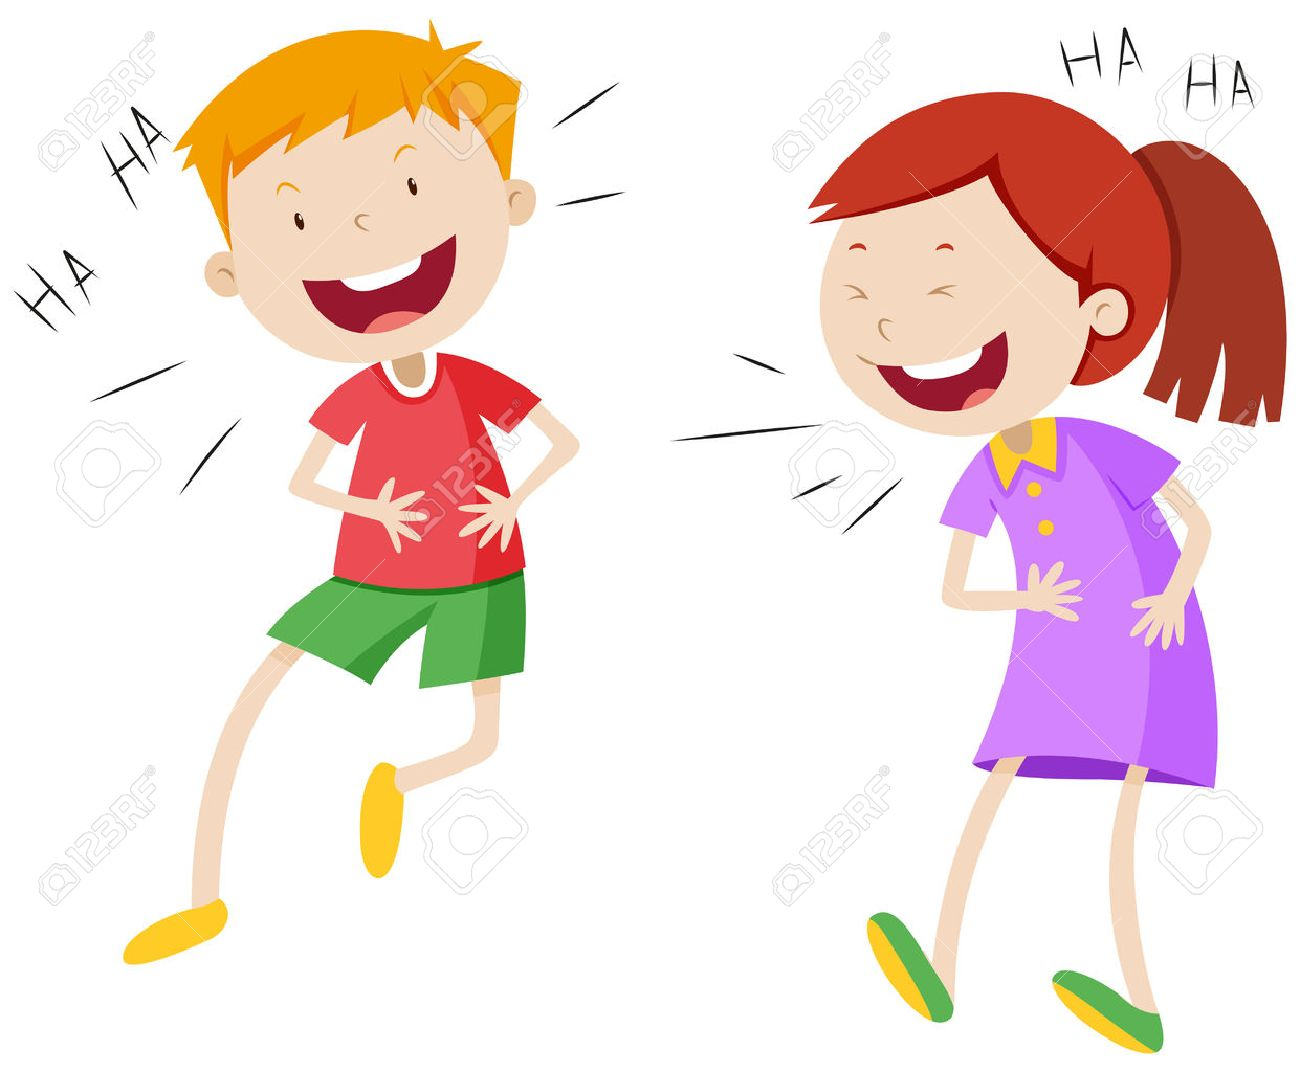 97 207 laughing stock vector illustration and royalty free laughing rh 123rf com laughing clip art images laughing clipart emoji